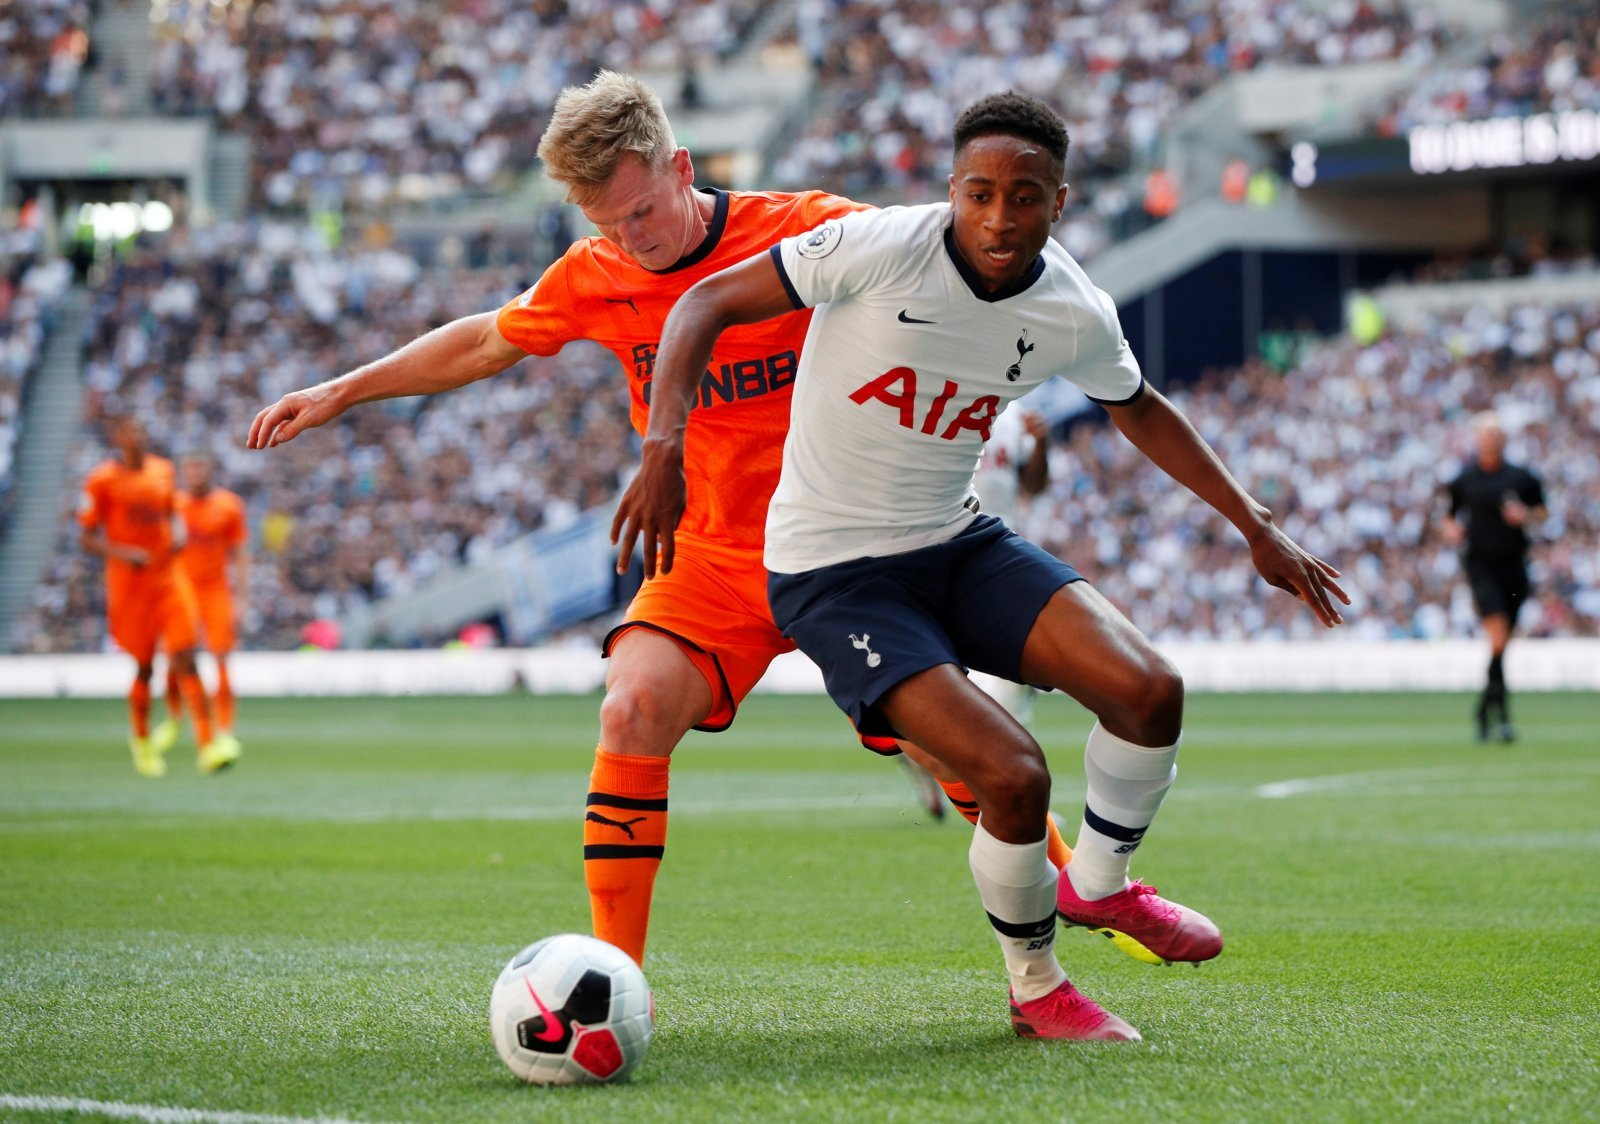 Tottenham Hotspur: Fans questioning club after reports over Kyle Walker-Peters emerges